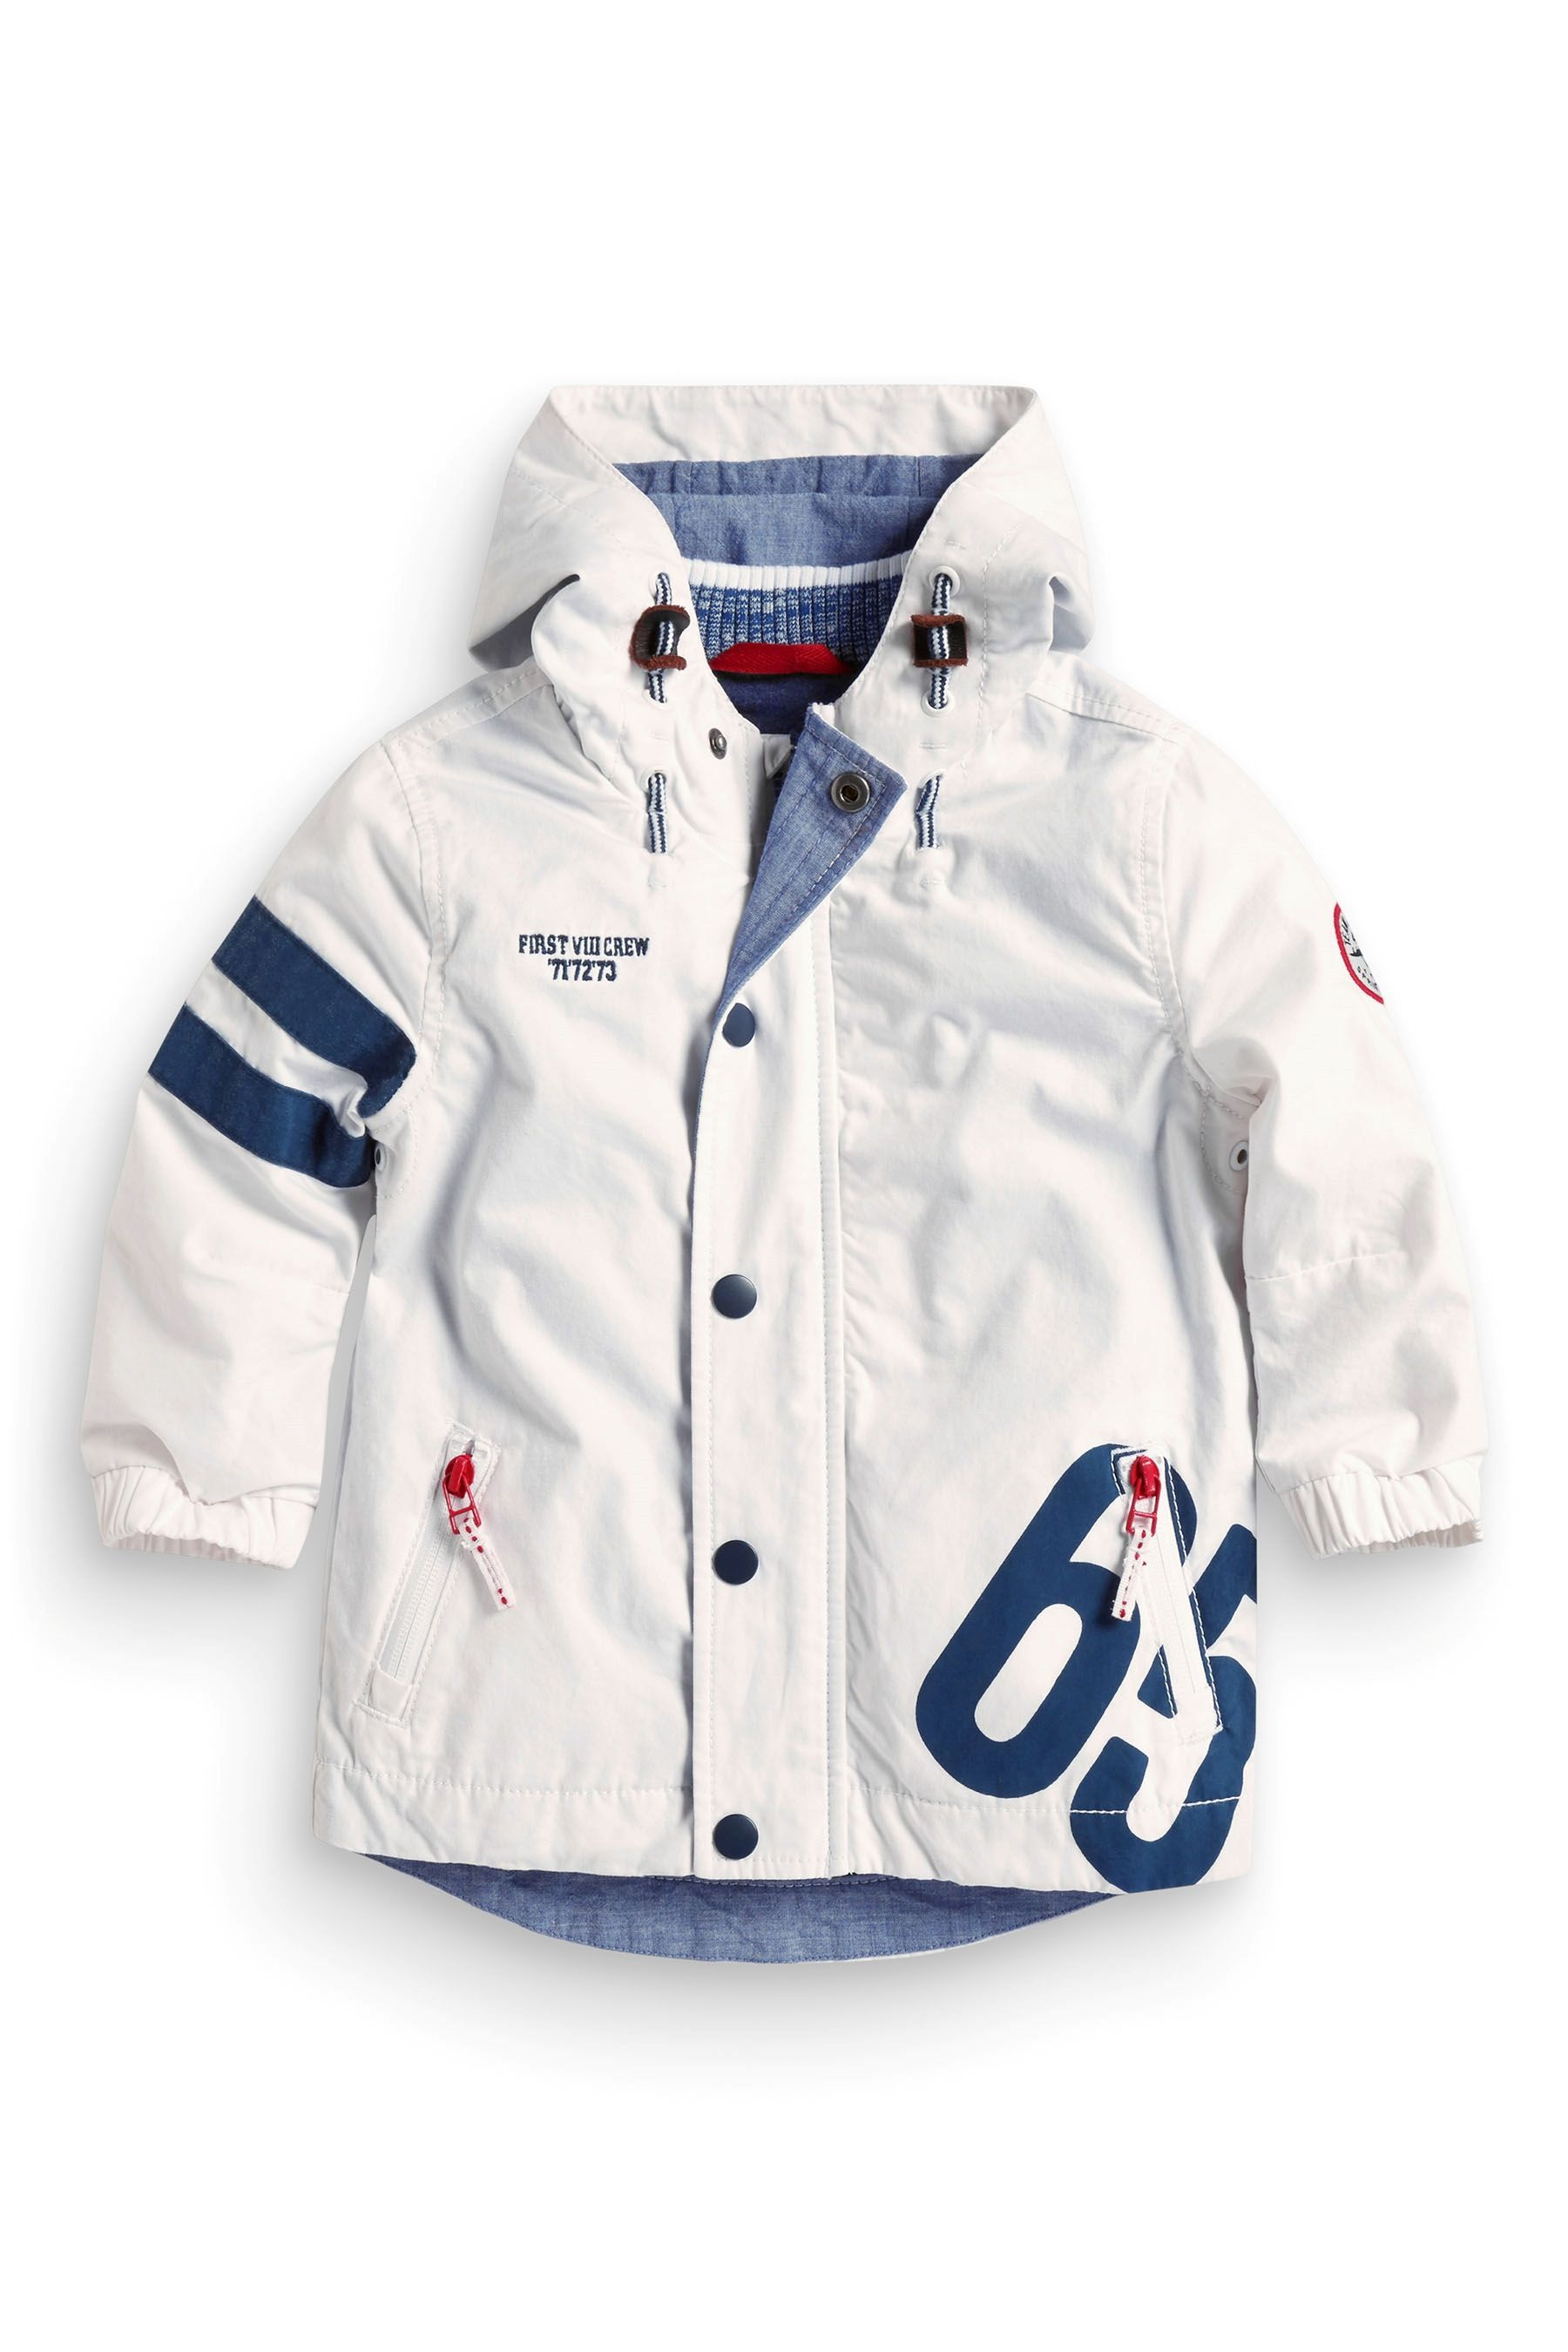 ddab83334 Buy White Jacket (3mths-6yrs) online today at Next: United States of America